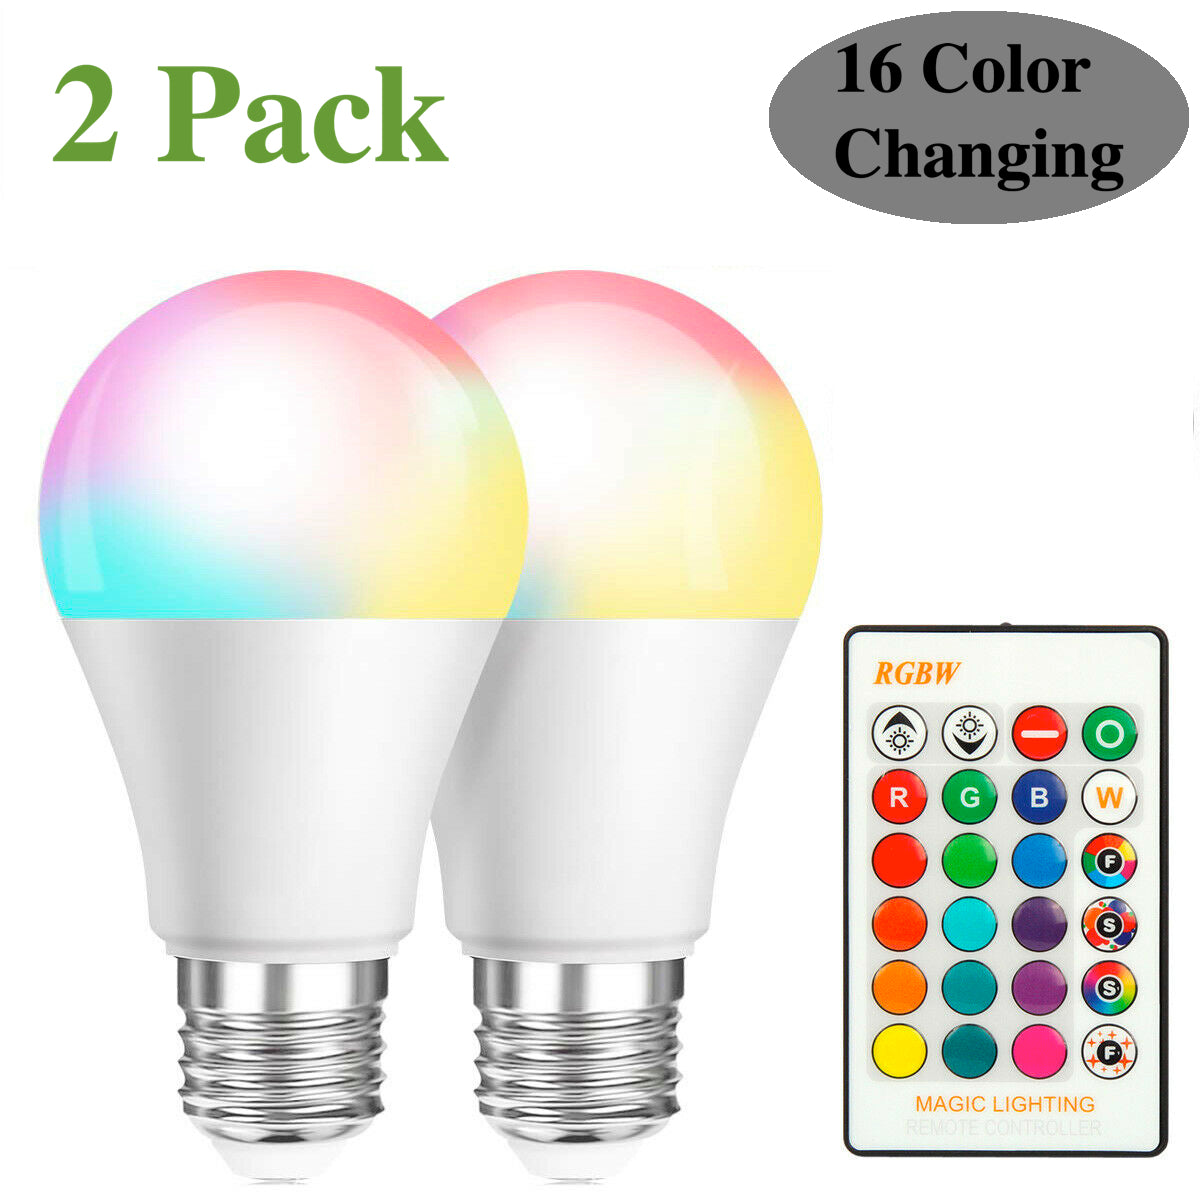 2-Pack Retro Led Color Changing Light Bulbs with Remote